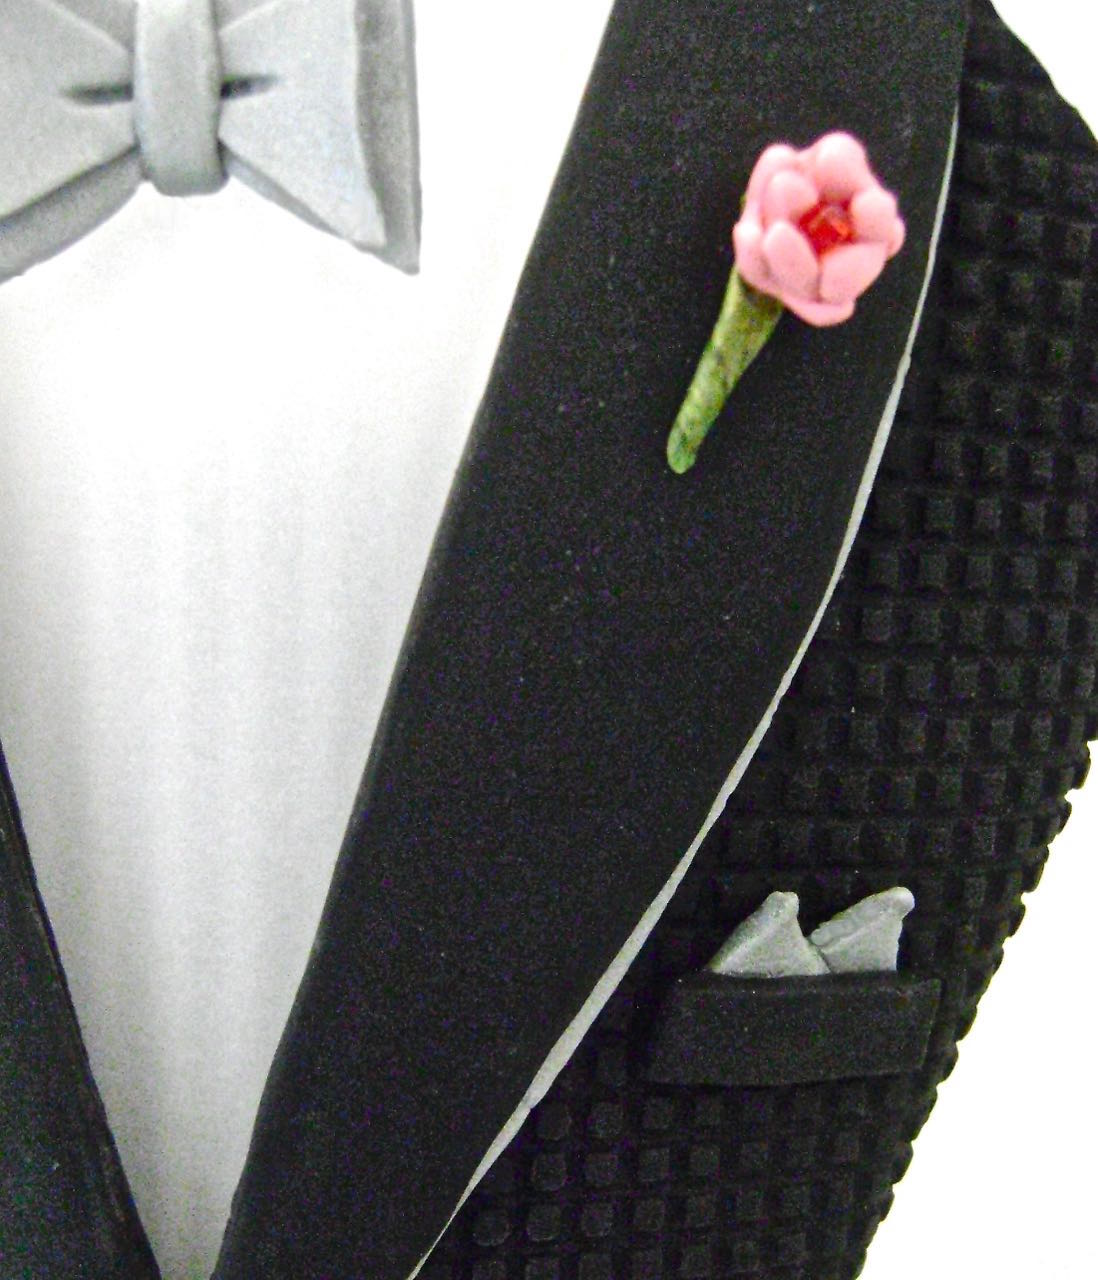 step 16 - Glue the bow tie in the center of the vellum collars with E6000. Also glue a small red bead in the center of the flower.